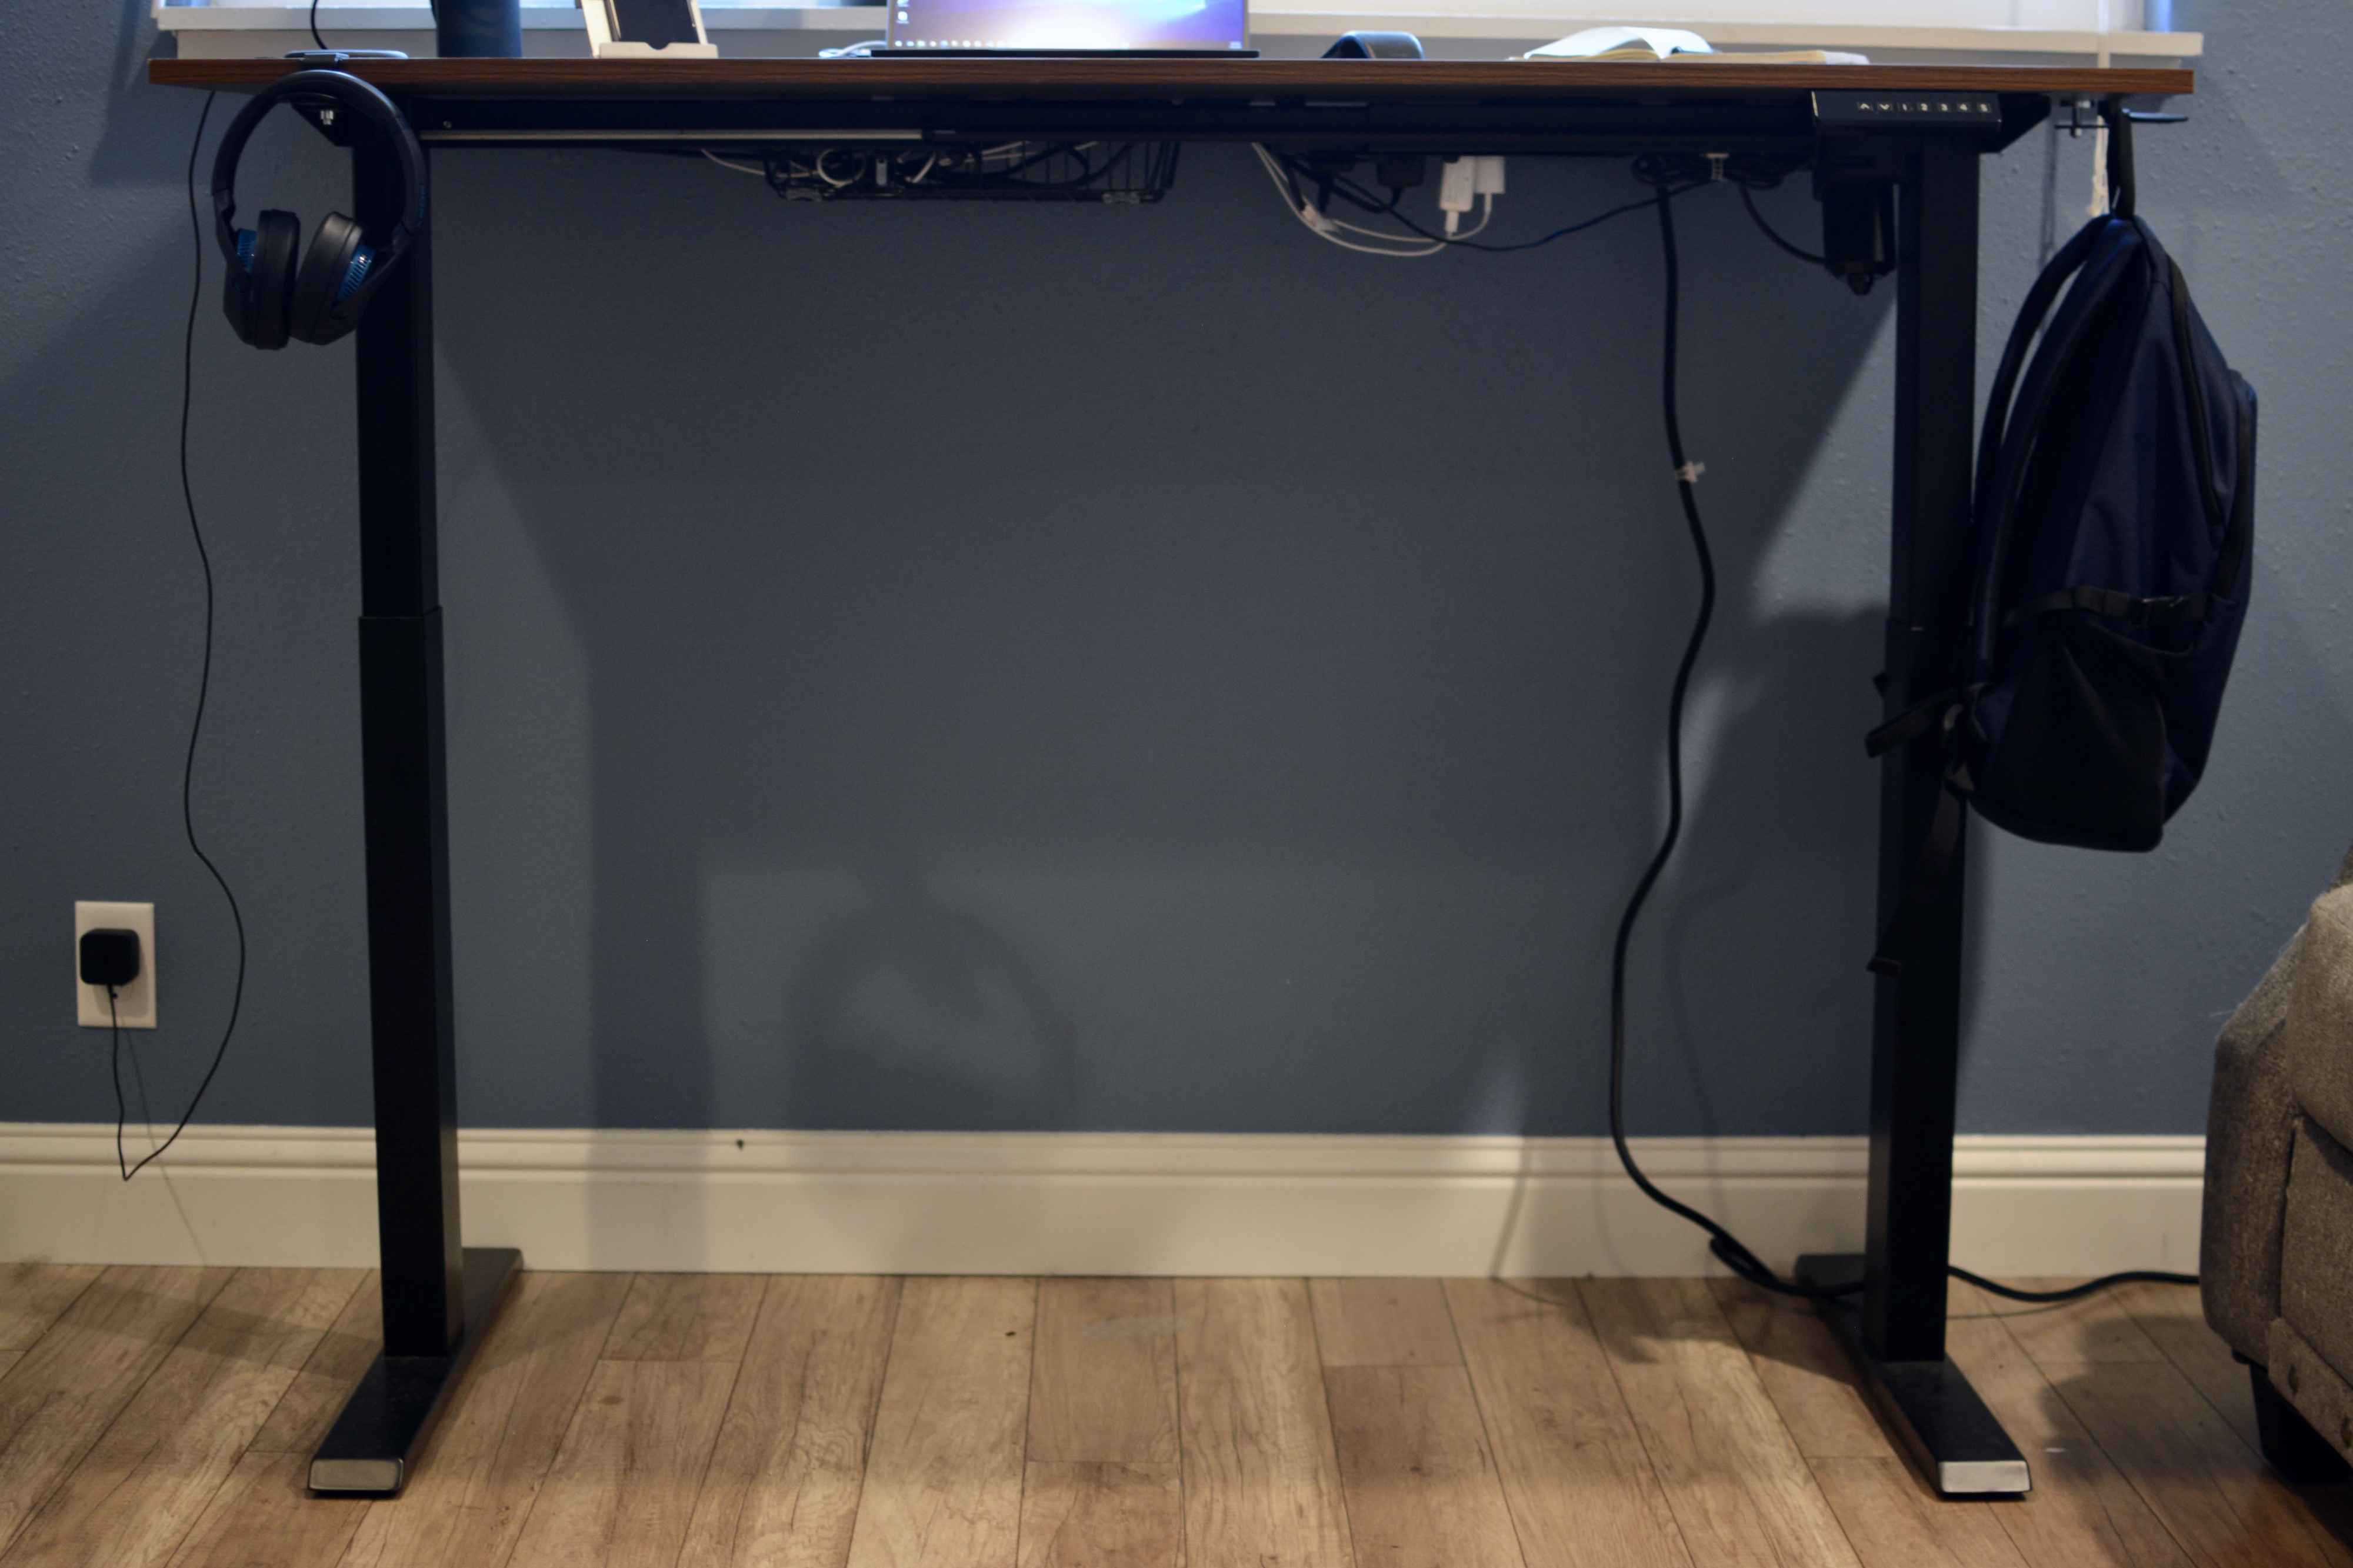 Front View of the TechOrbits Electric Standing Desk